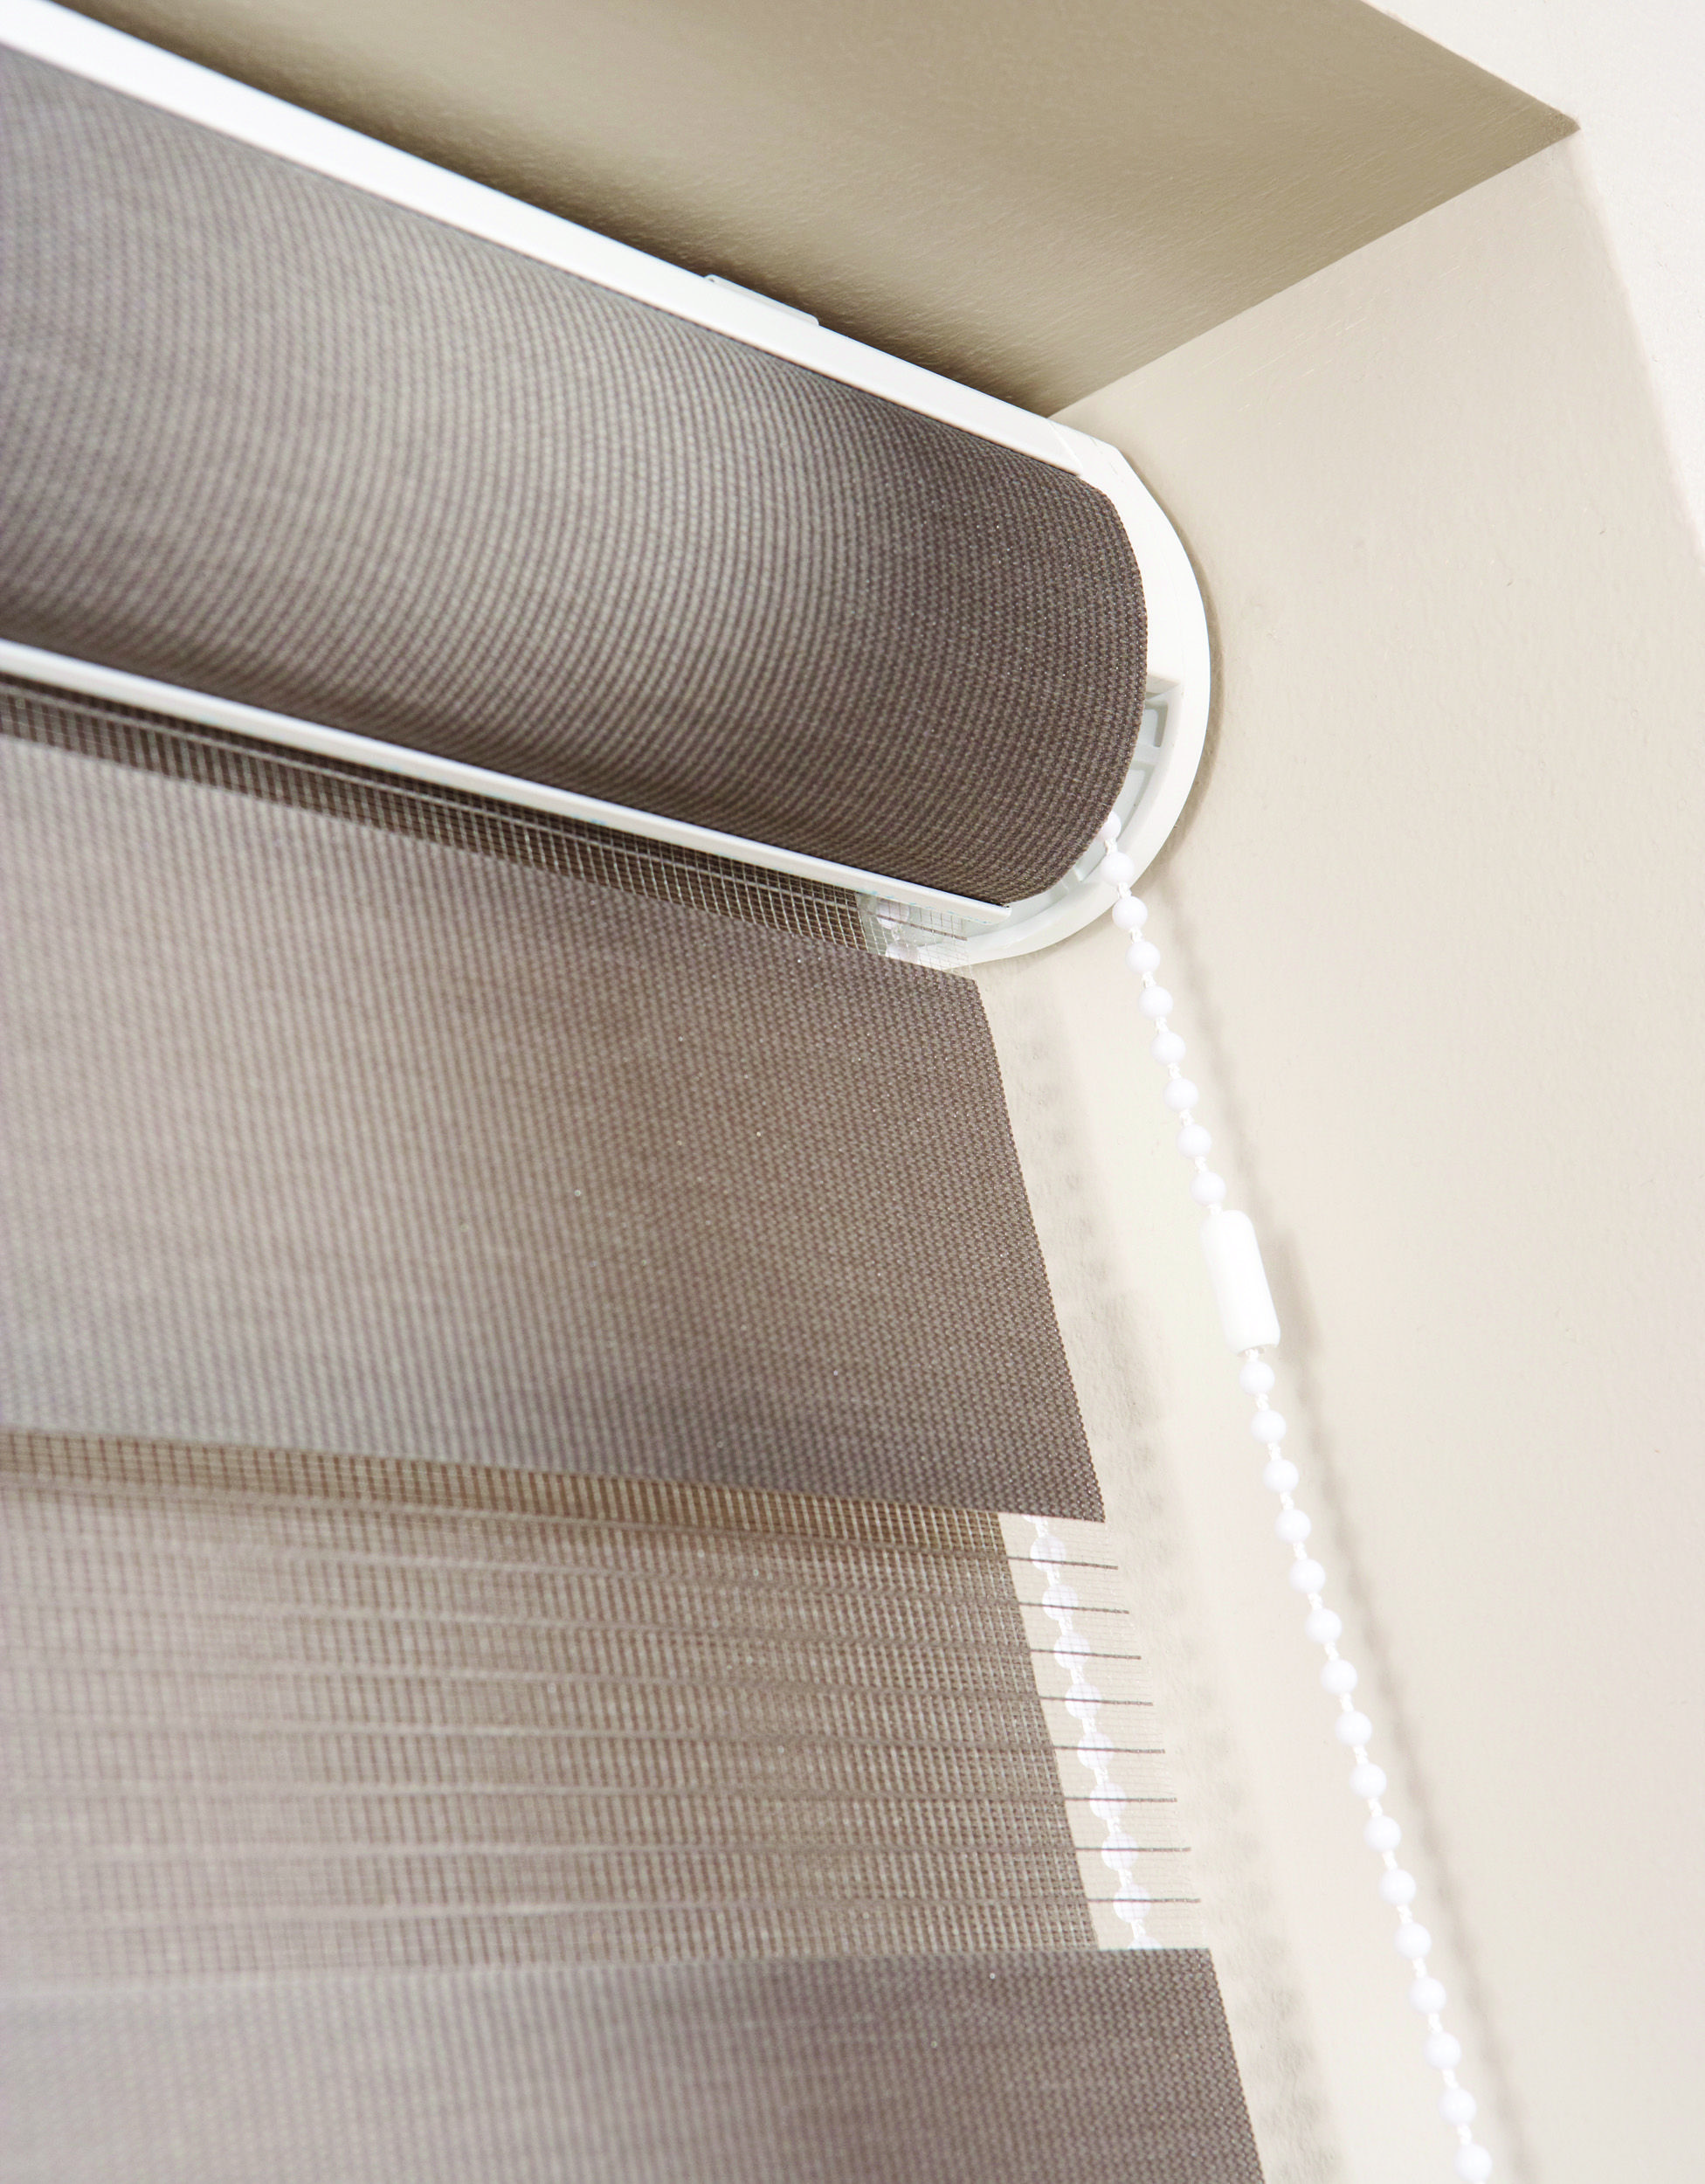 Schiebegardinen Roller Vision Roller Blinds By Inspired Window Coverings Duo Roller